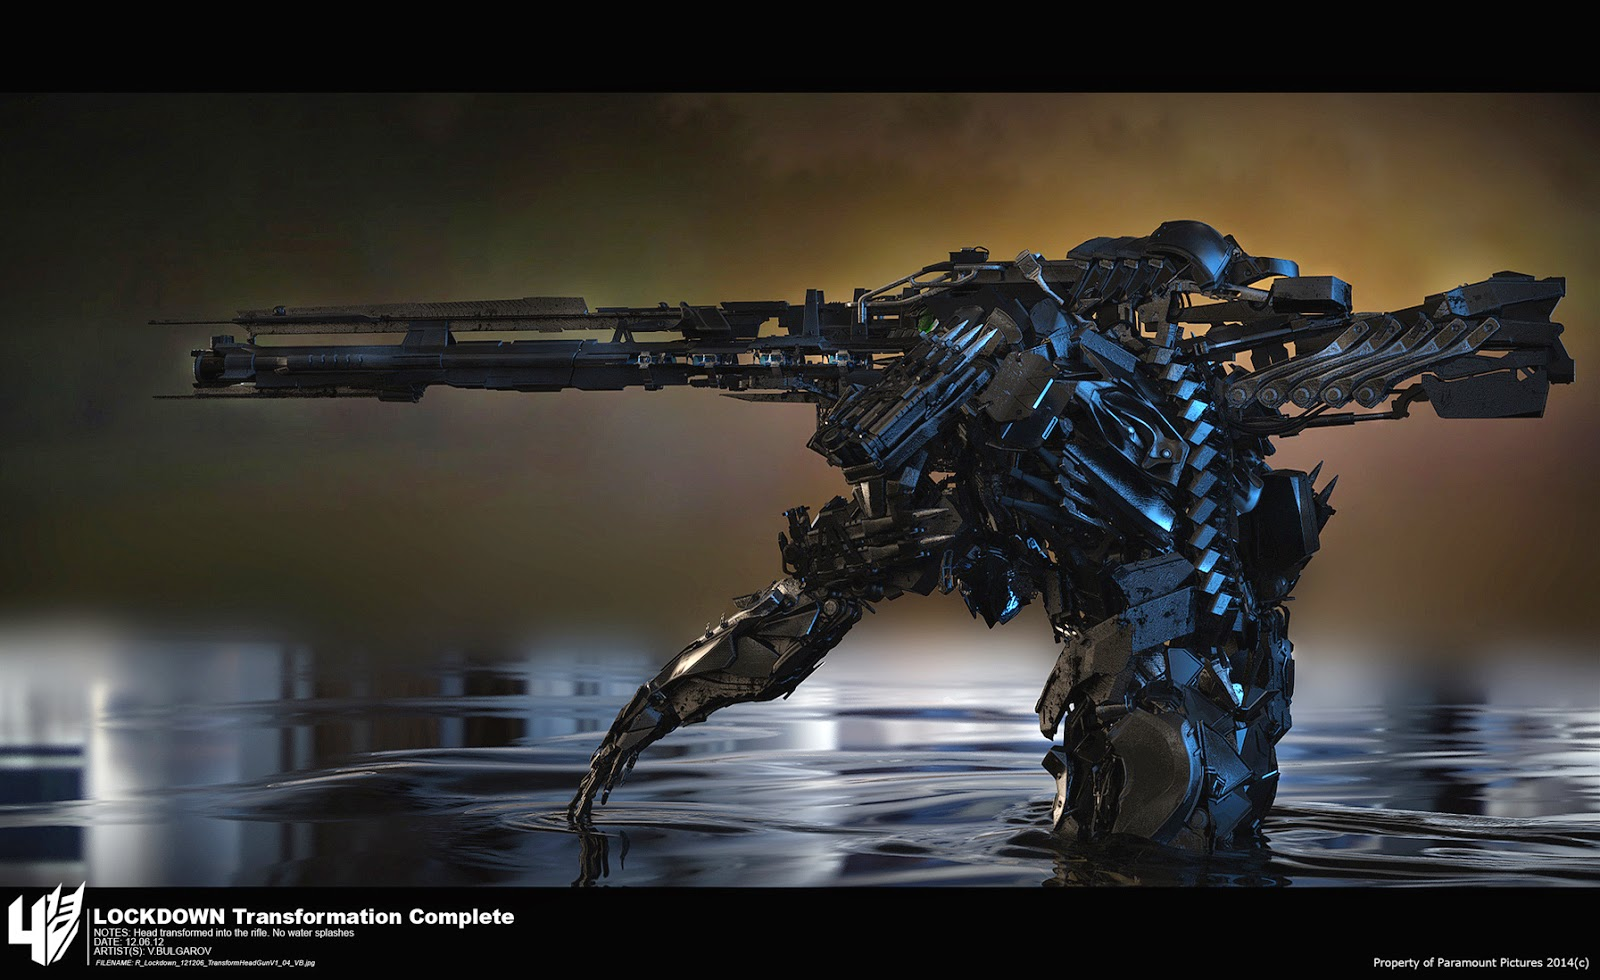 transformers 4 age of extinction lockdown 39 s weapon cg daily news. Black Bedroom Furniture Sets. Home Design Ideas